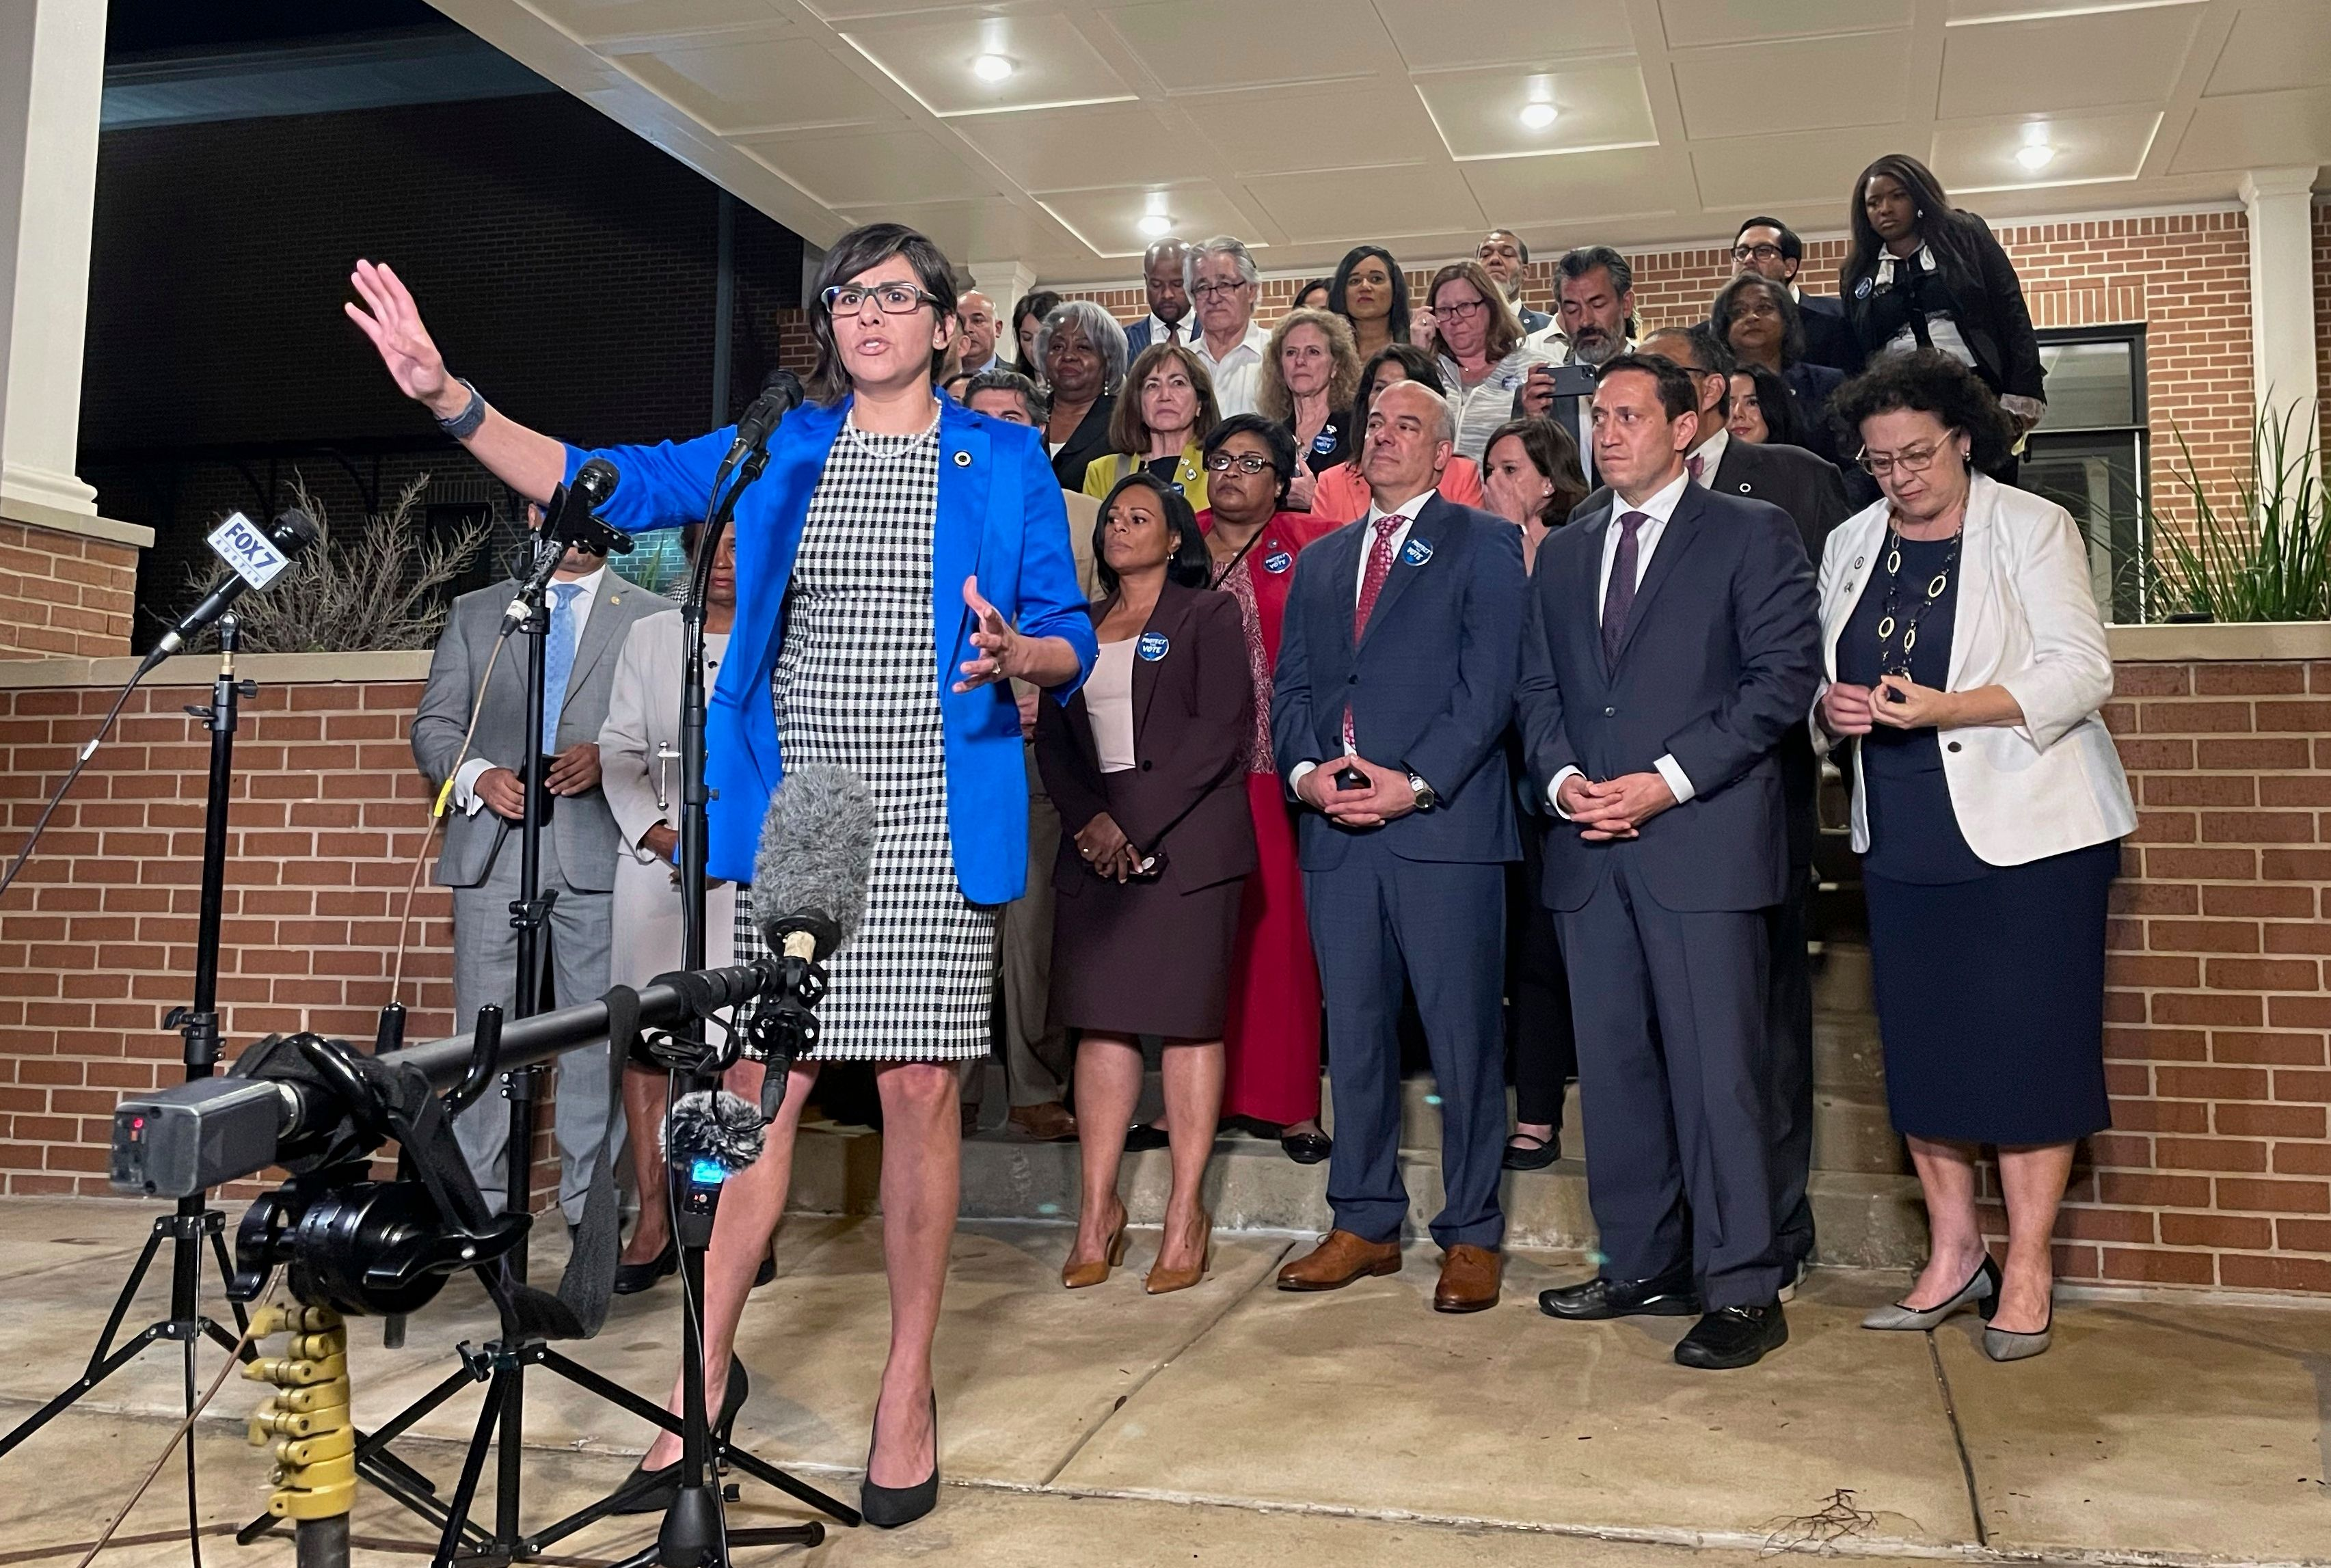 Texas state Rep. Jessica Gonzales speaks during a news conference in Austin, Texas, on early Monday, May 31, 2021, after Hous